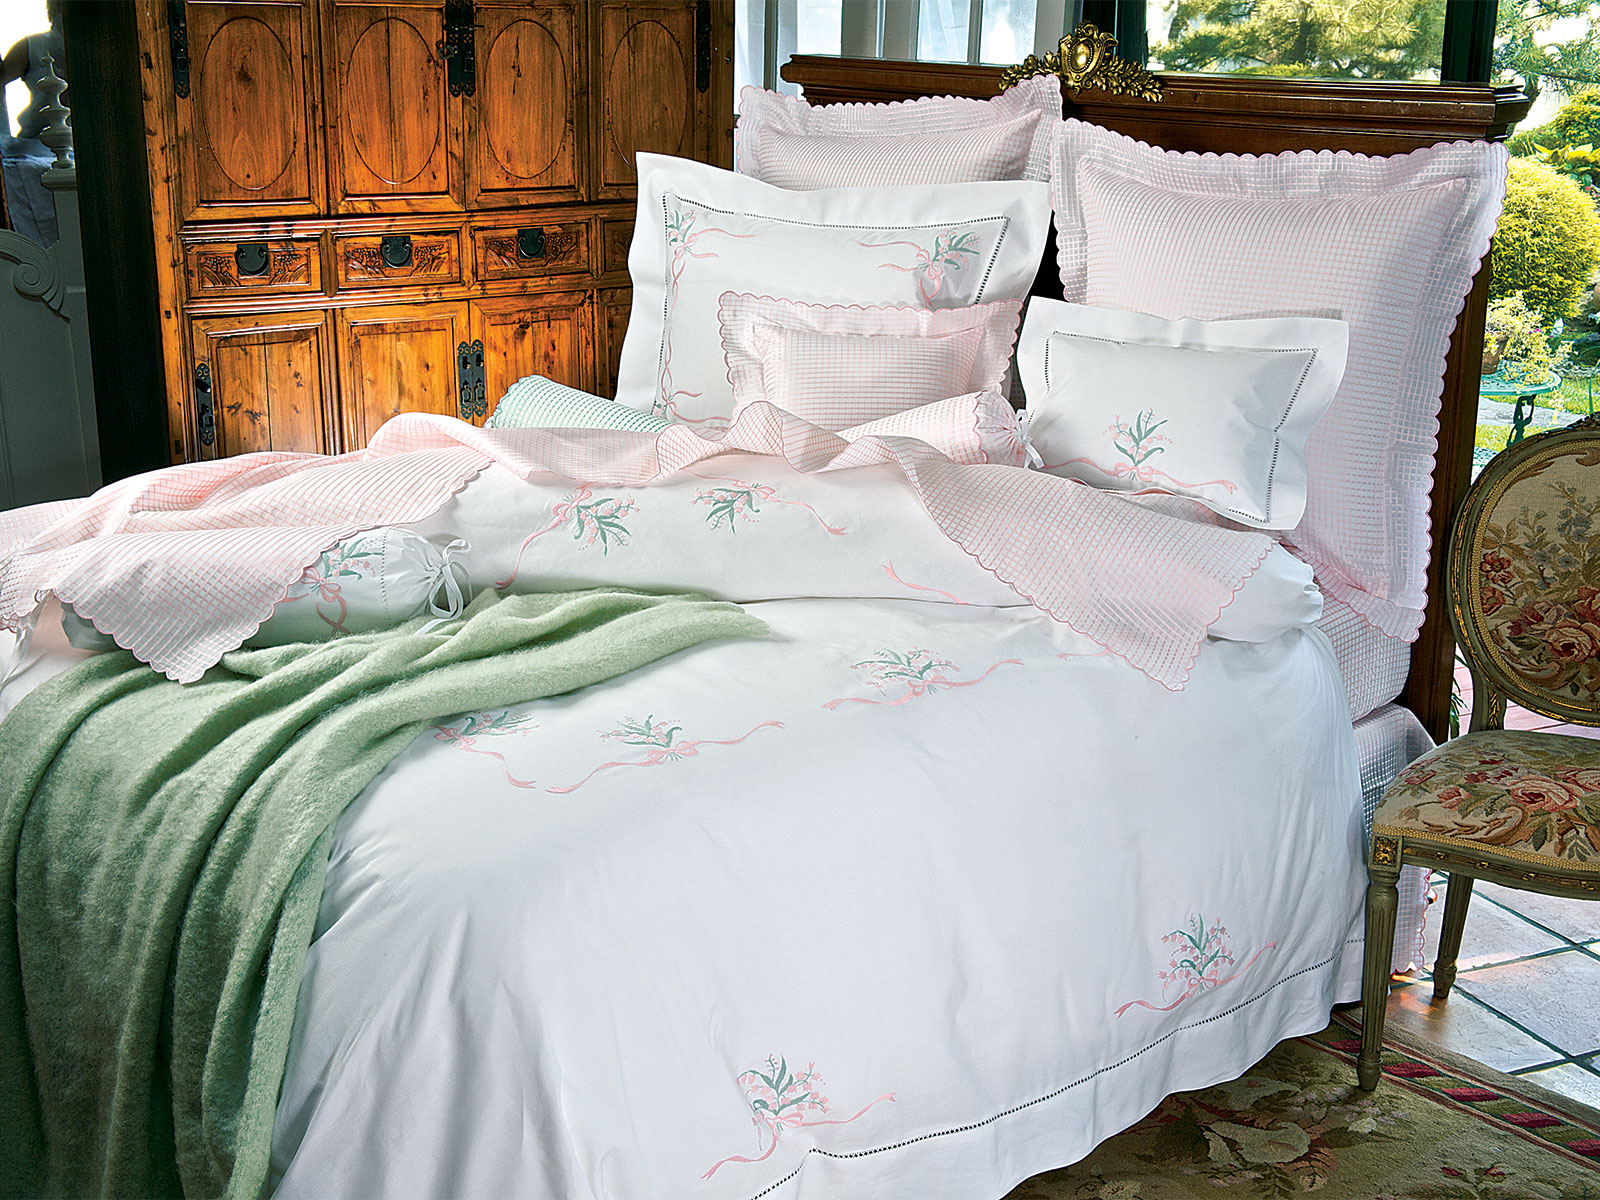 Lily Luxury Bedding Italian Bed Linens Schweitzer Linen